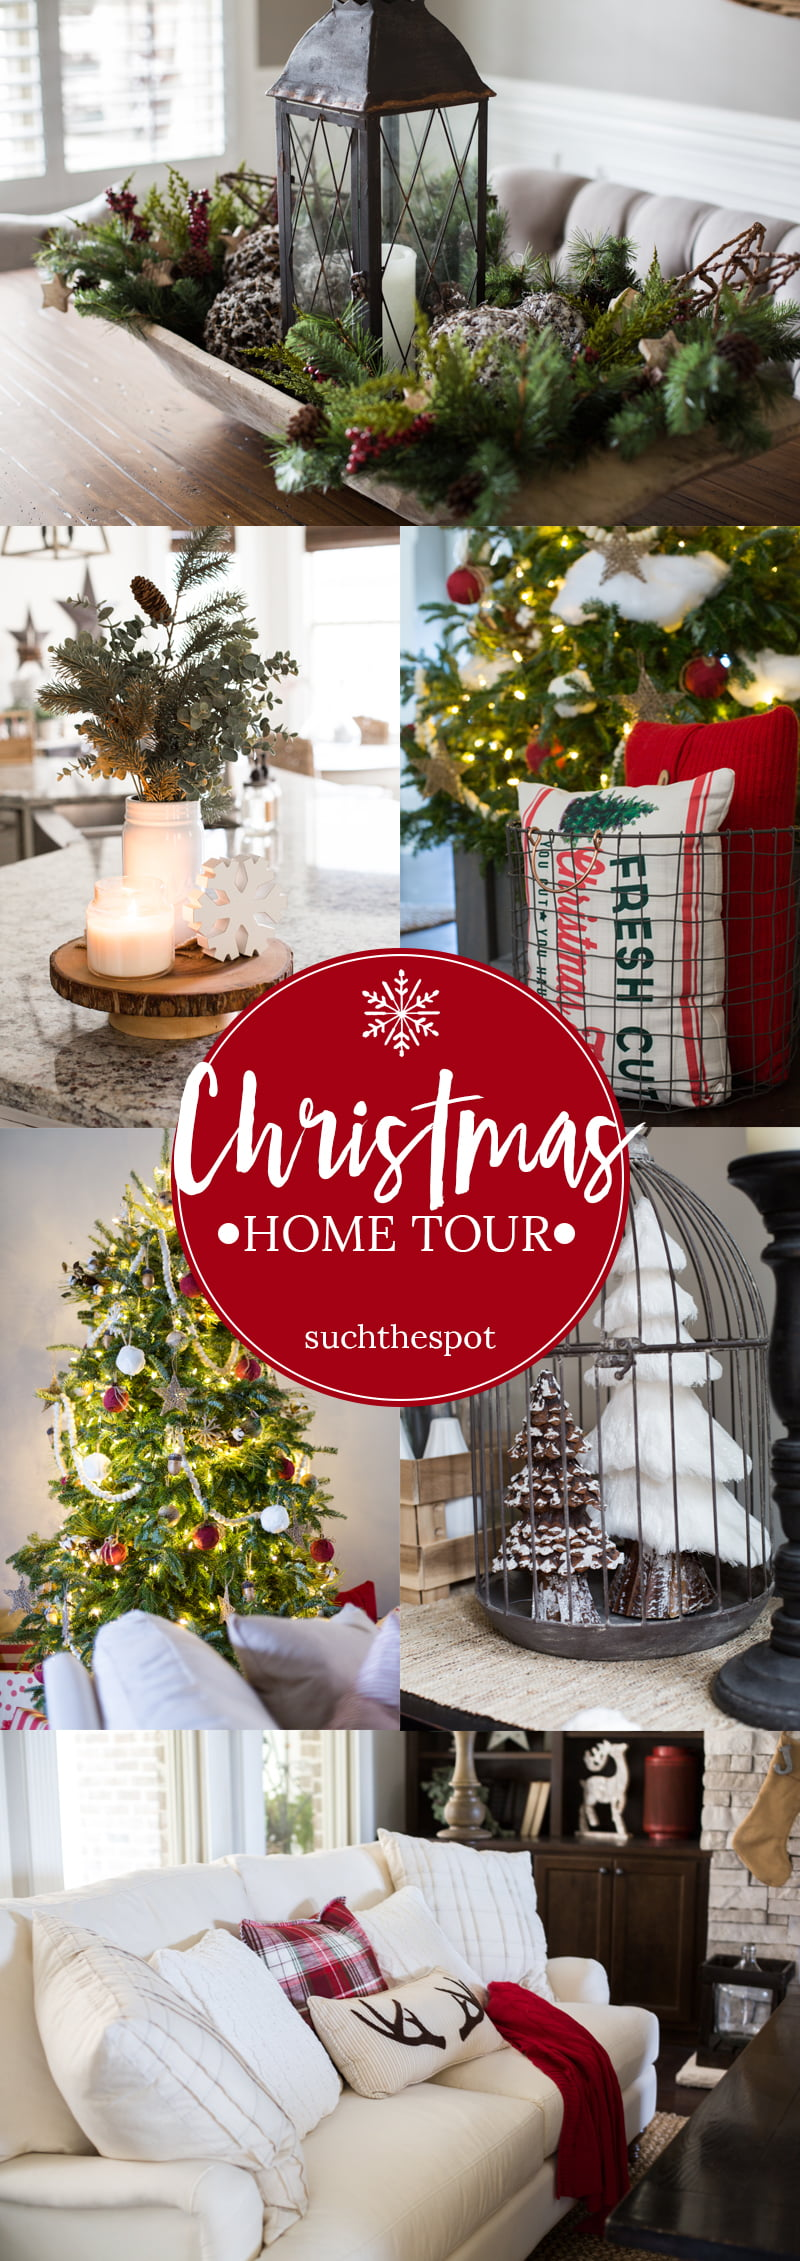 Christmas Decor Ideas - We went rustic and cozy for our decor this year with lots of texture and light. Here's a peek inside.